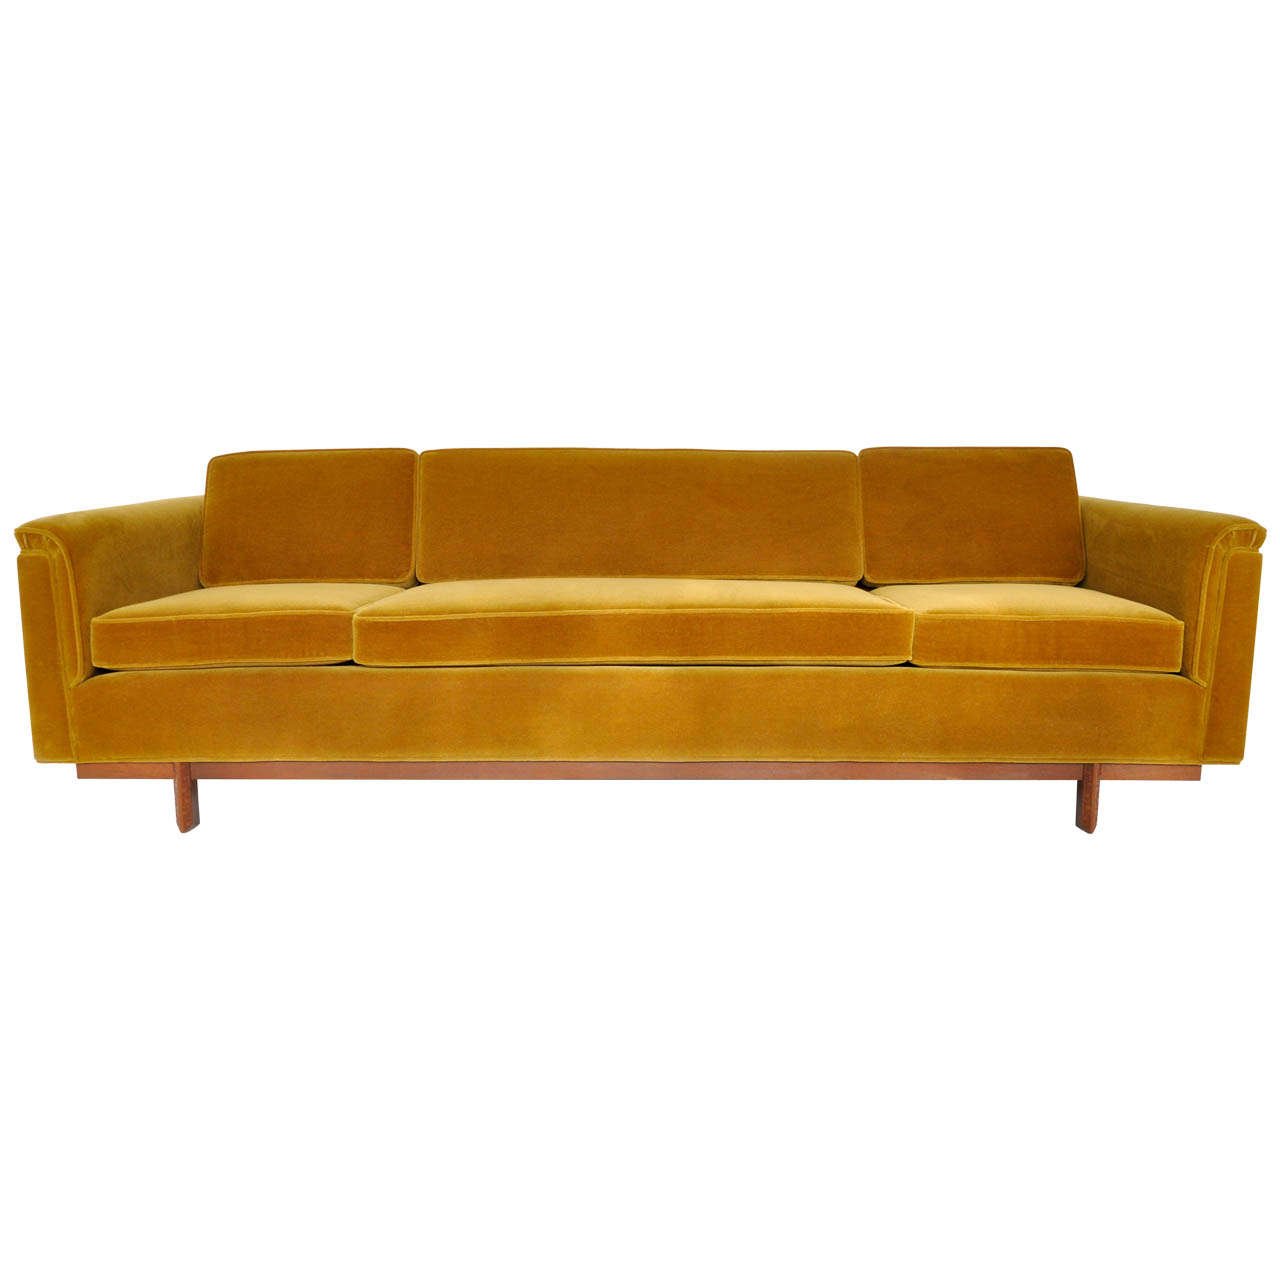 lloyd s of chatham sofa minnie mouse flip open with slumber frank wright at 1stdibs